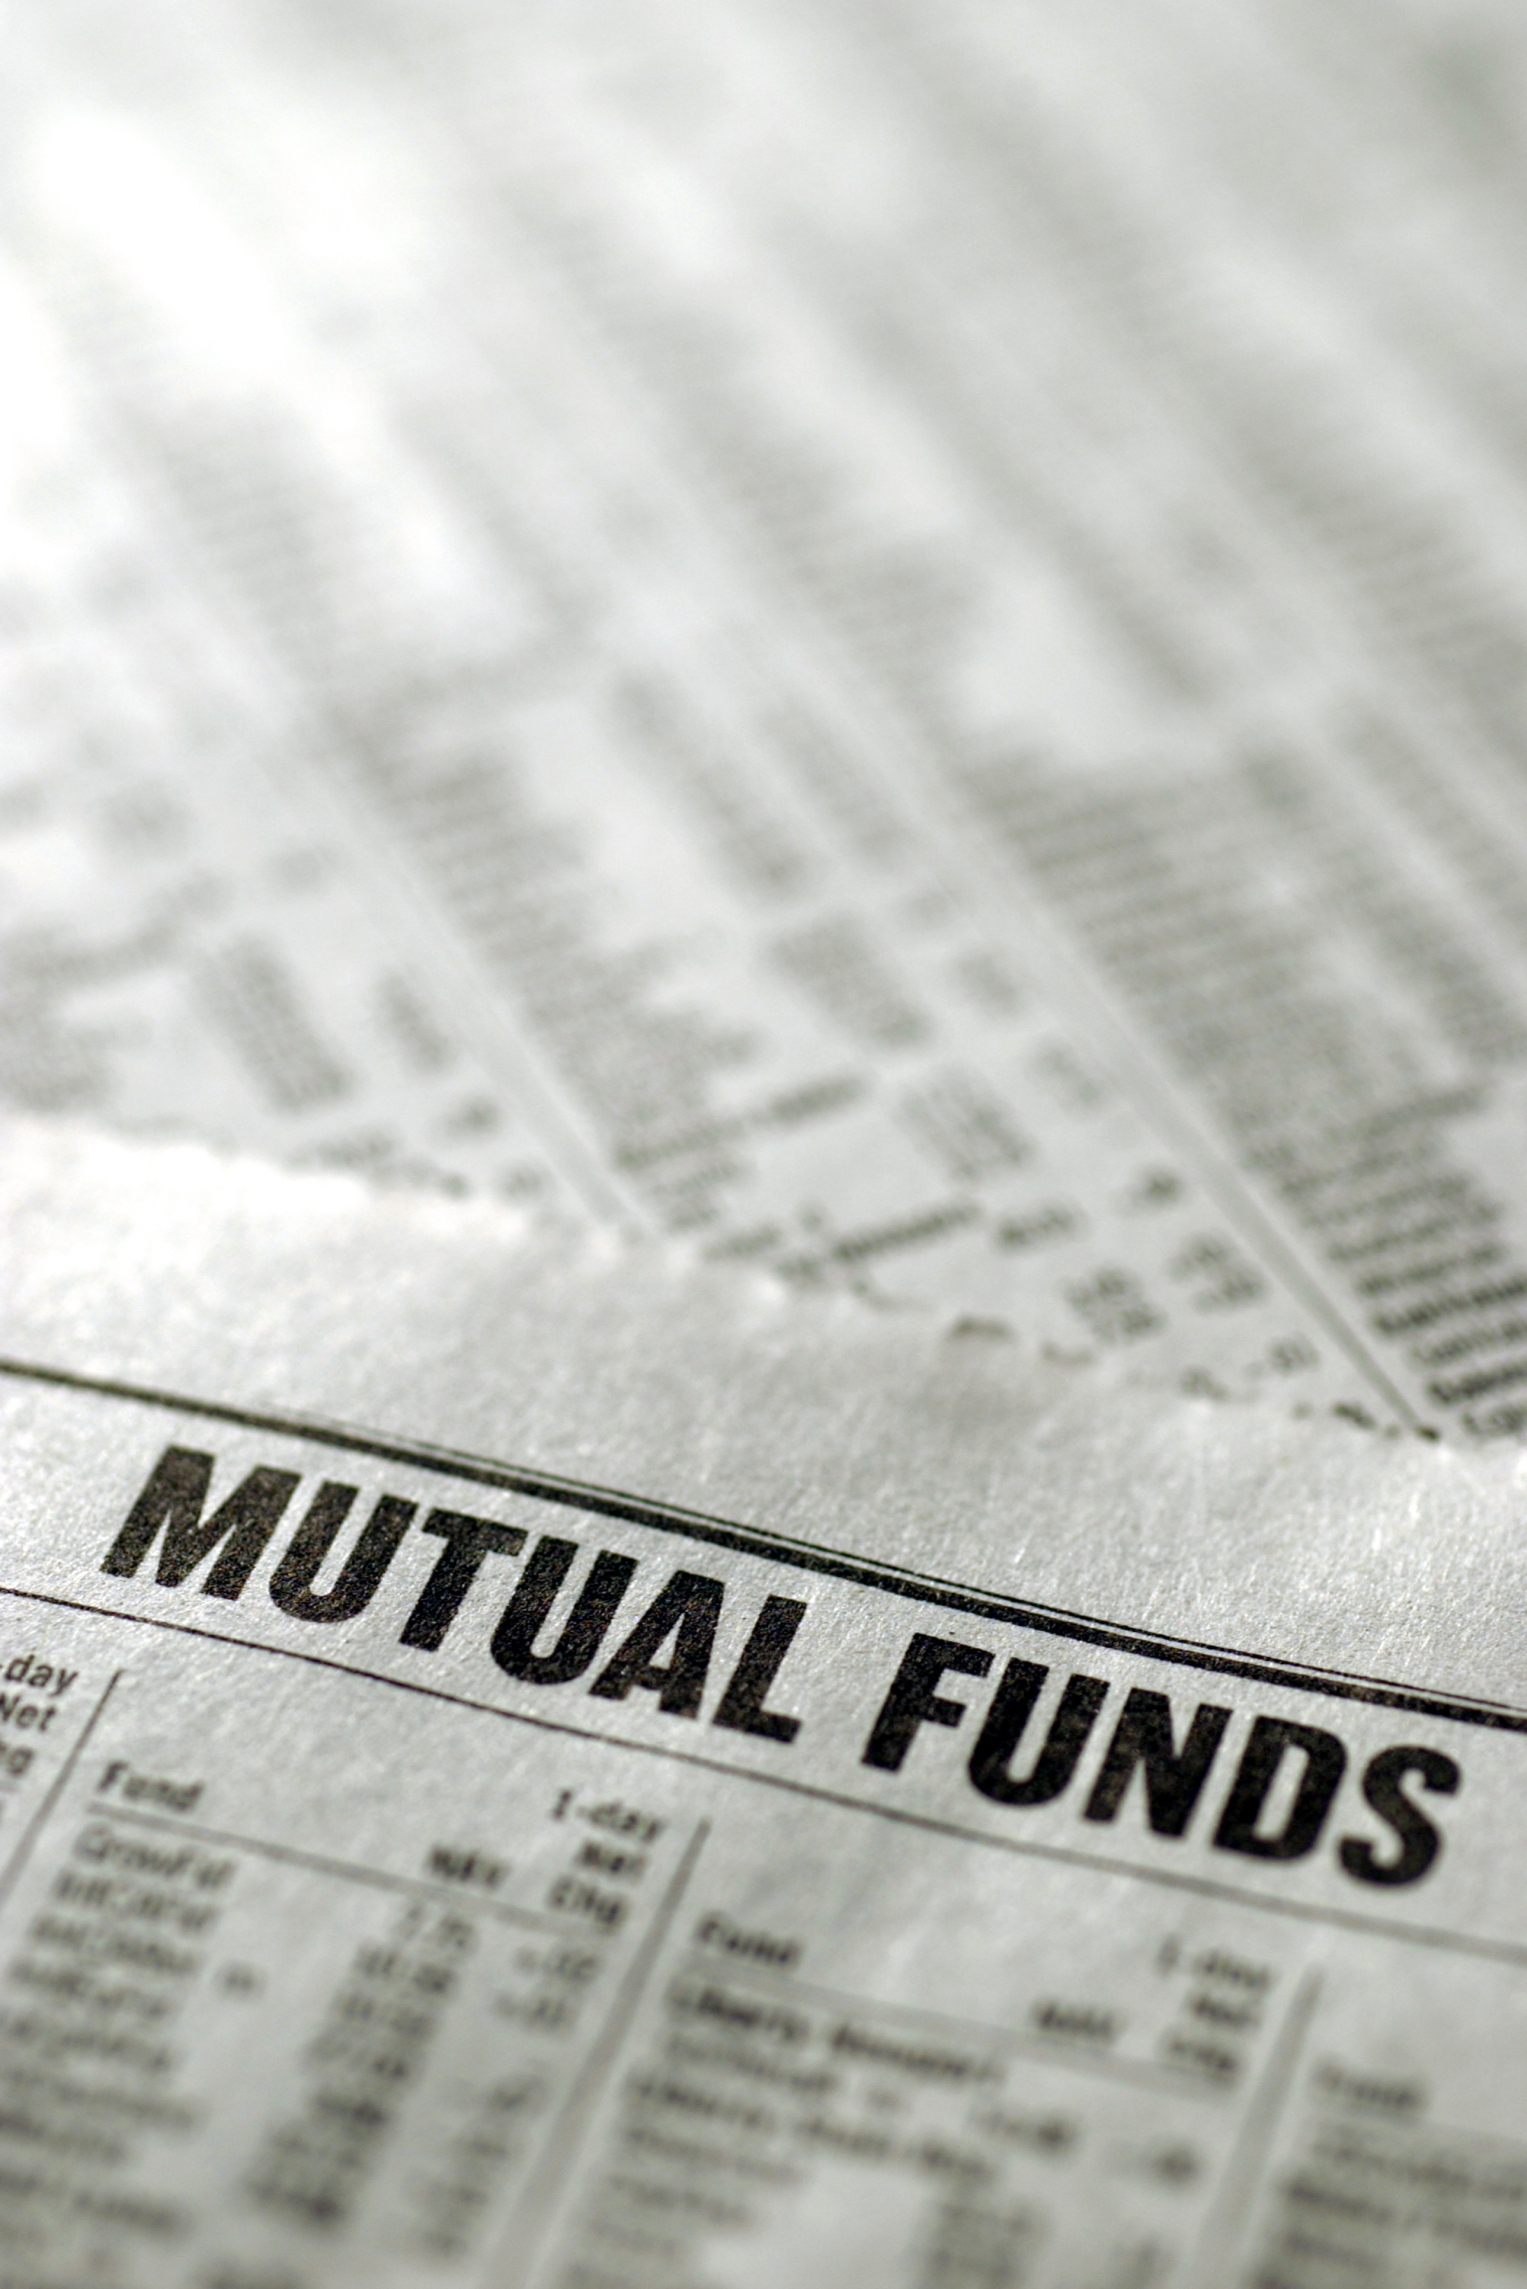 Liquidating mutual funds you are intimidating meaning